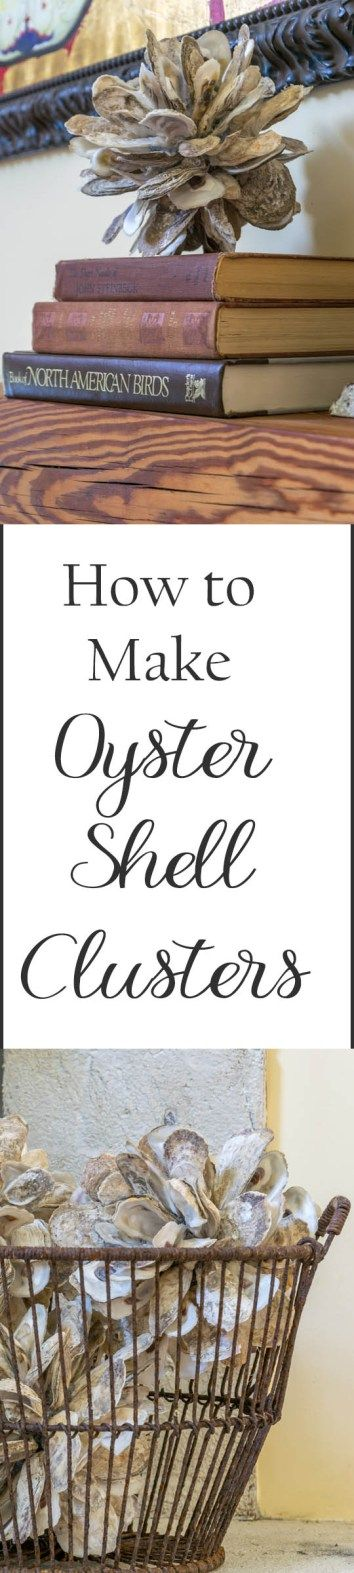 Inexpensive and easy to make DIY idea! Illustrated instructions to make an Oyste...